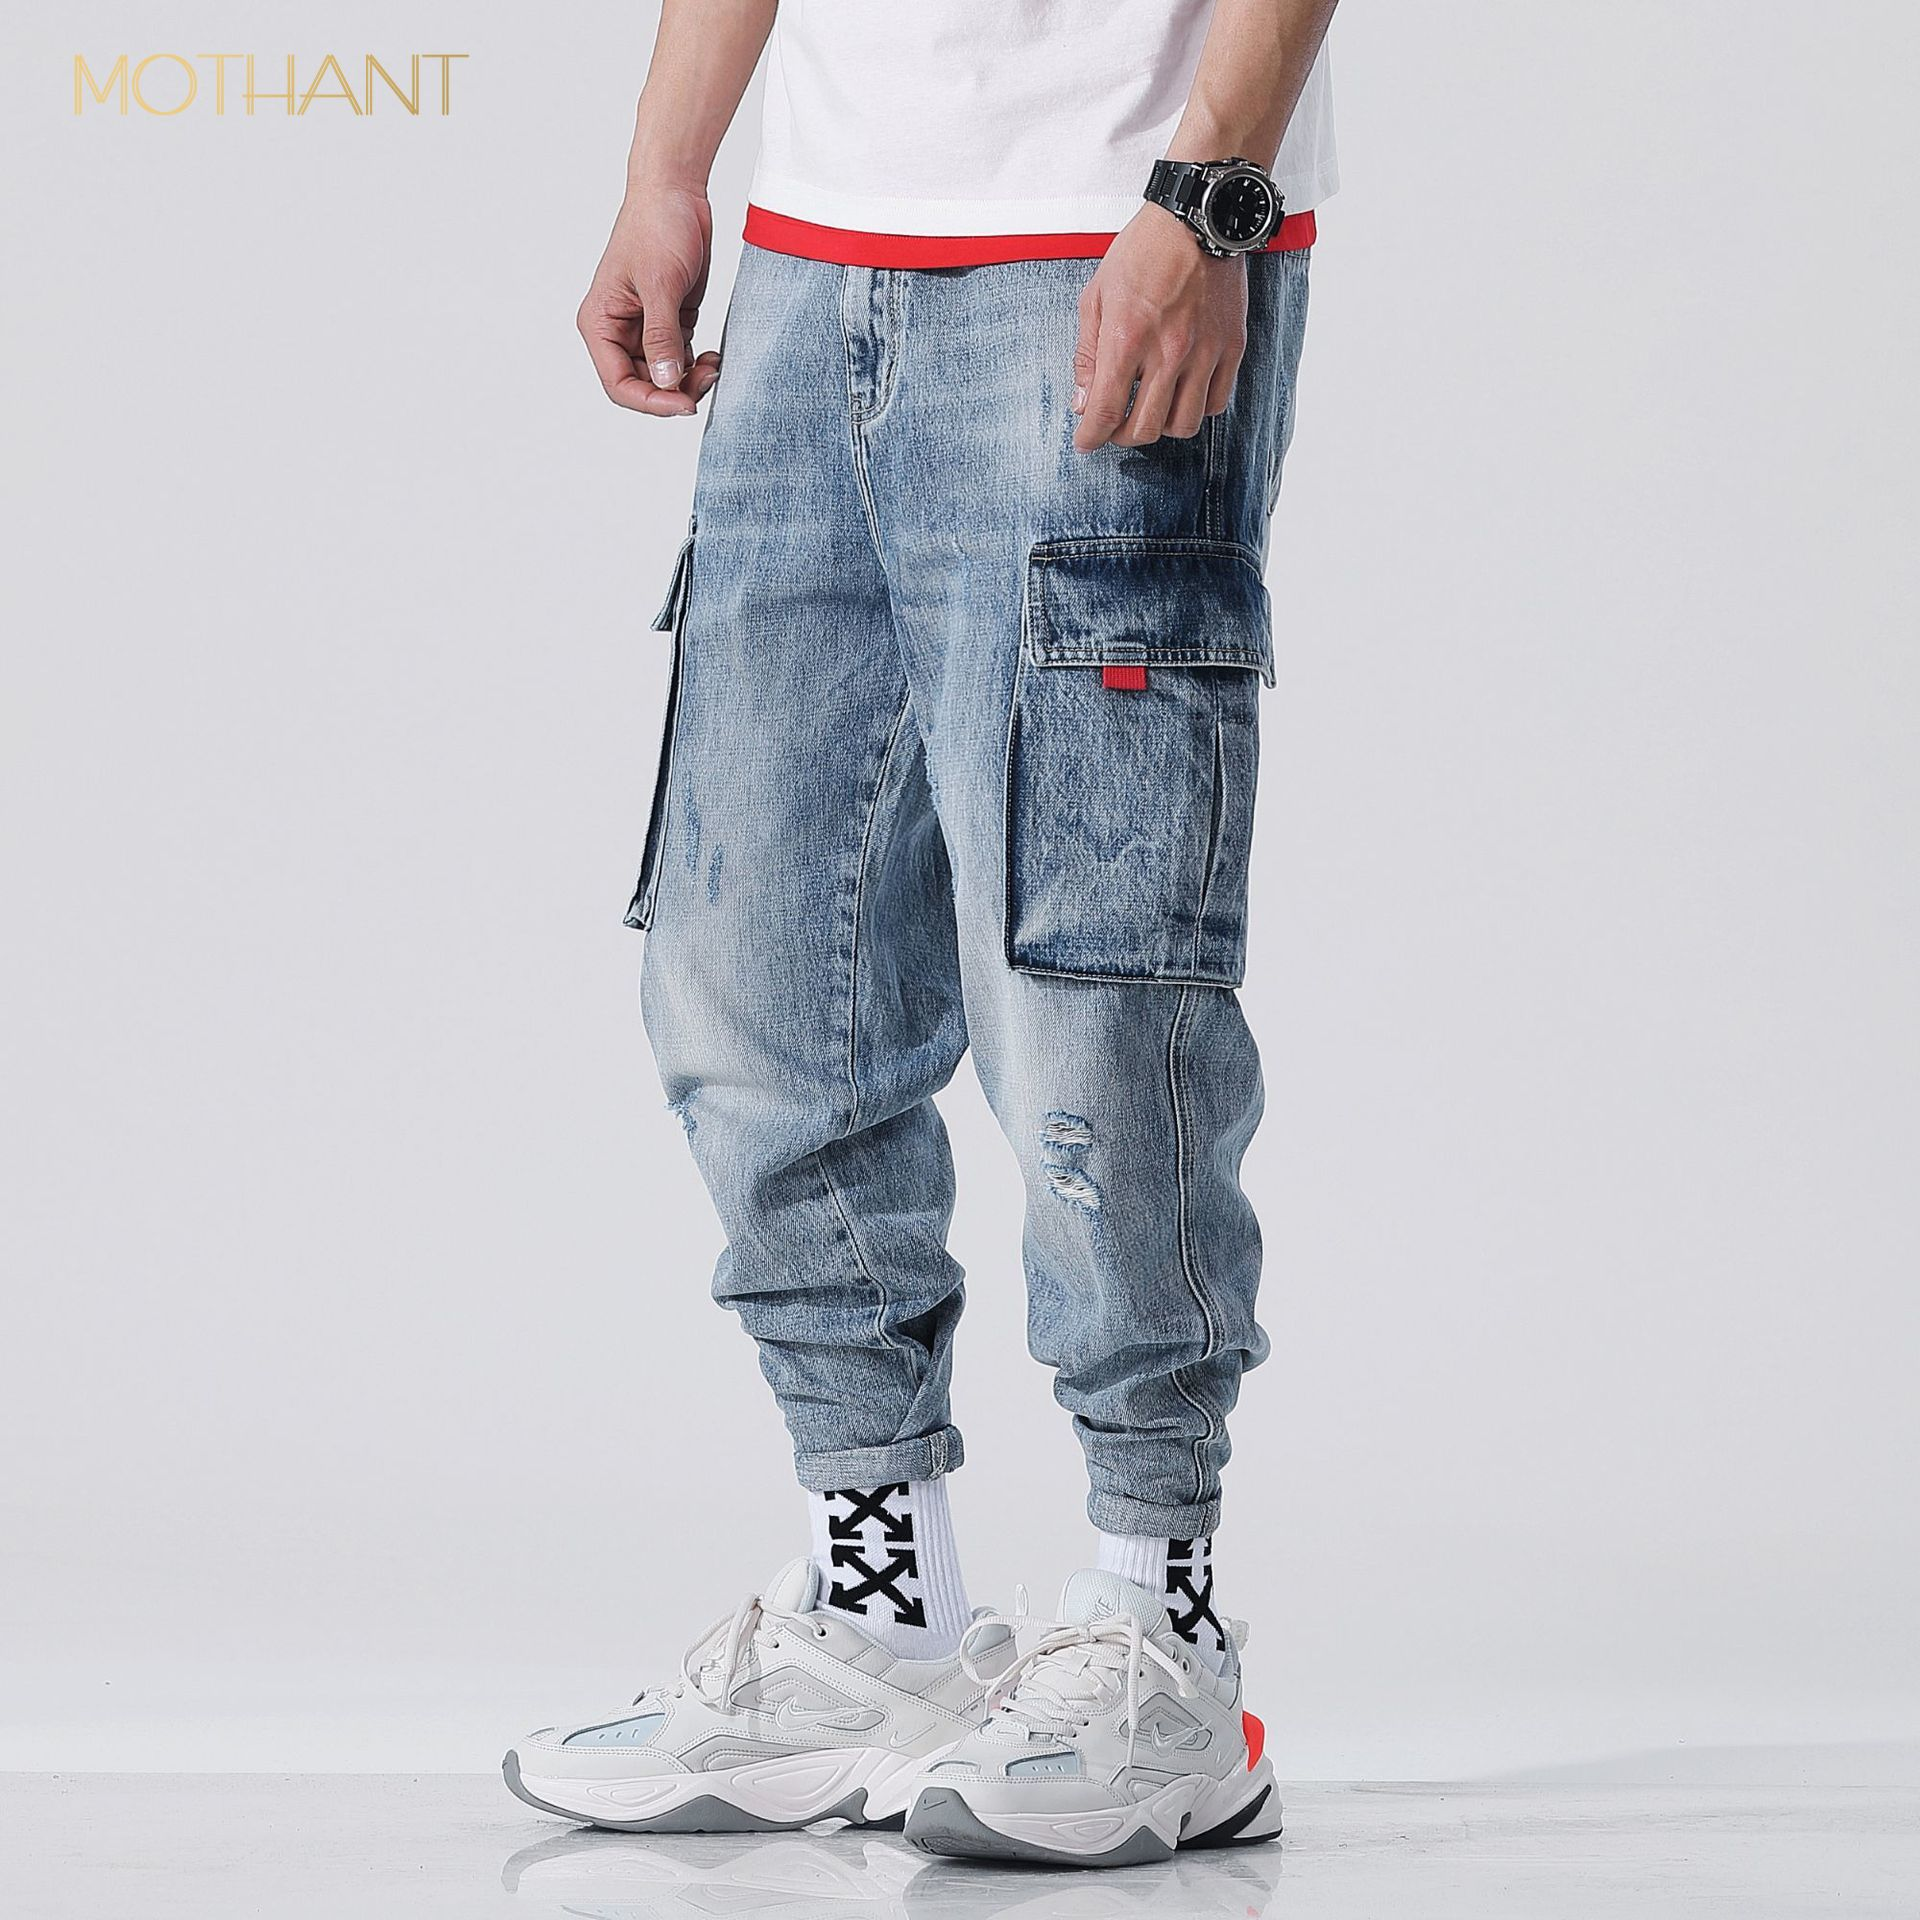 Tide Brand Loose Japanese Harlan Jeans Male Micro Fat Teenager Worn Out Multi-pocket Cowboy Harlan Overalls Male Stretch Jeans